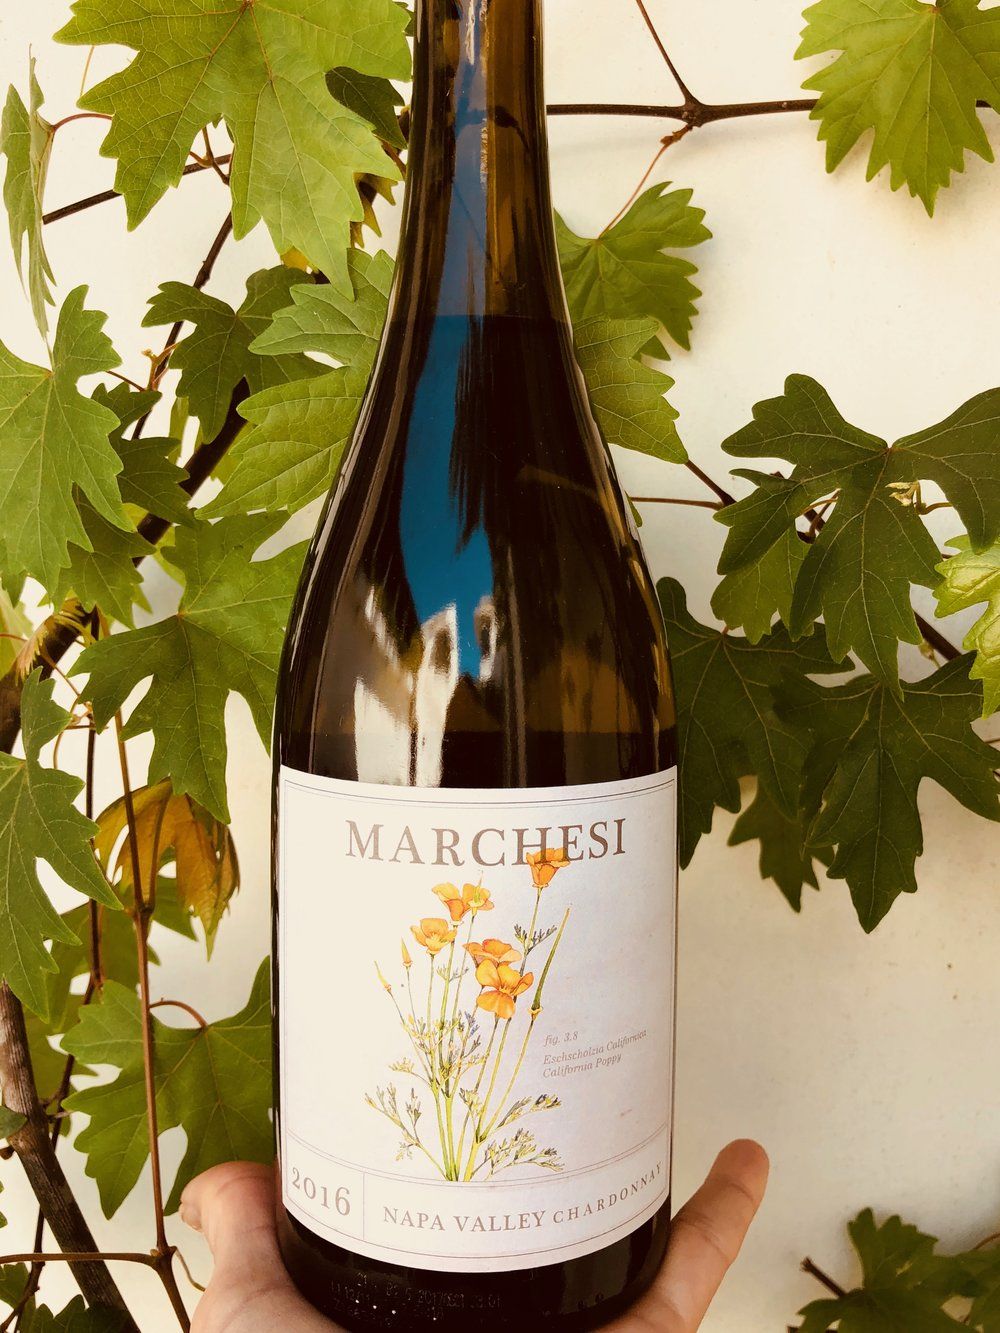 - David Marchesi Napa Valley Chardonnay 2016 (Carneros Hills) is a well-balanced traditional Chardonnay. Not overly fruity, and not very buttery-oaky but definitely note the French oak. We will buy again as a daily drinker.List $27 Angel Price $16